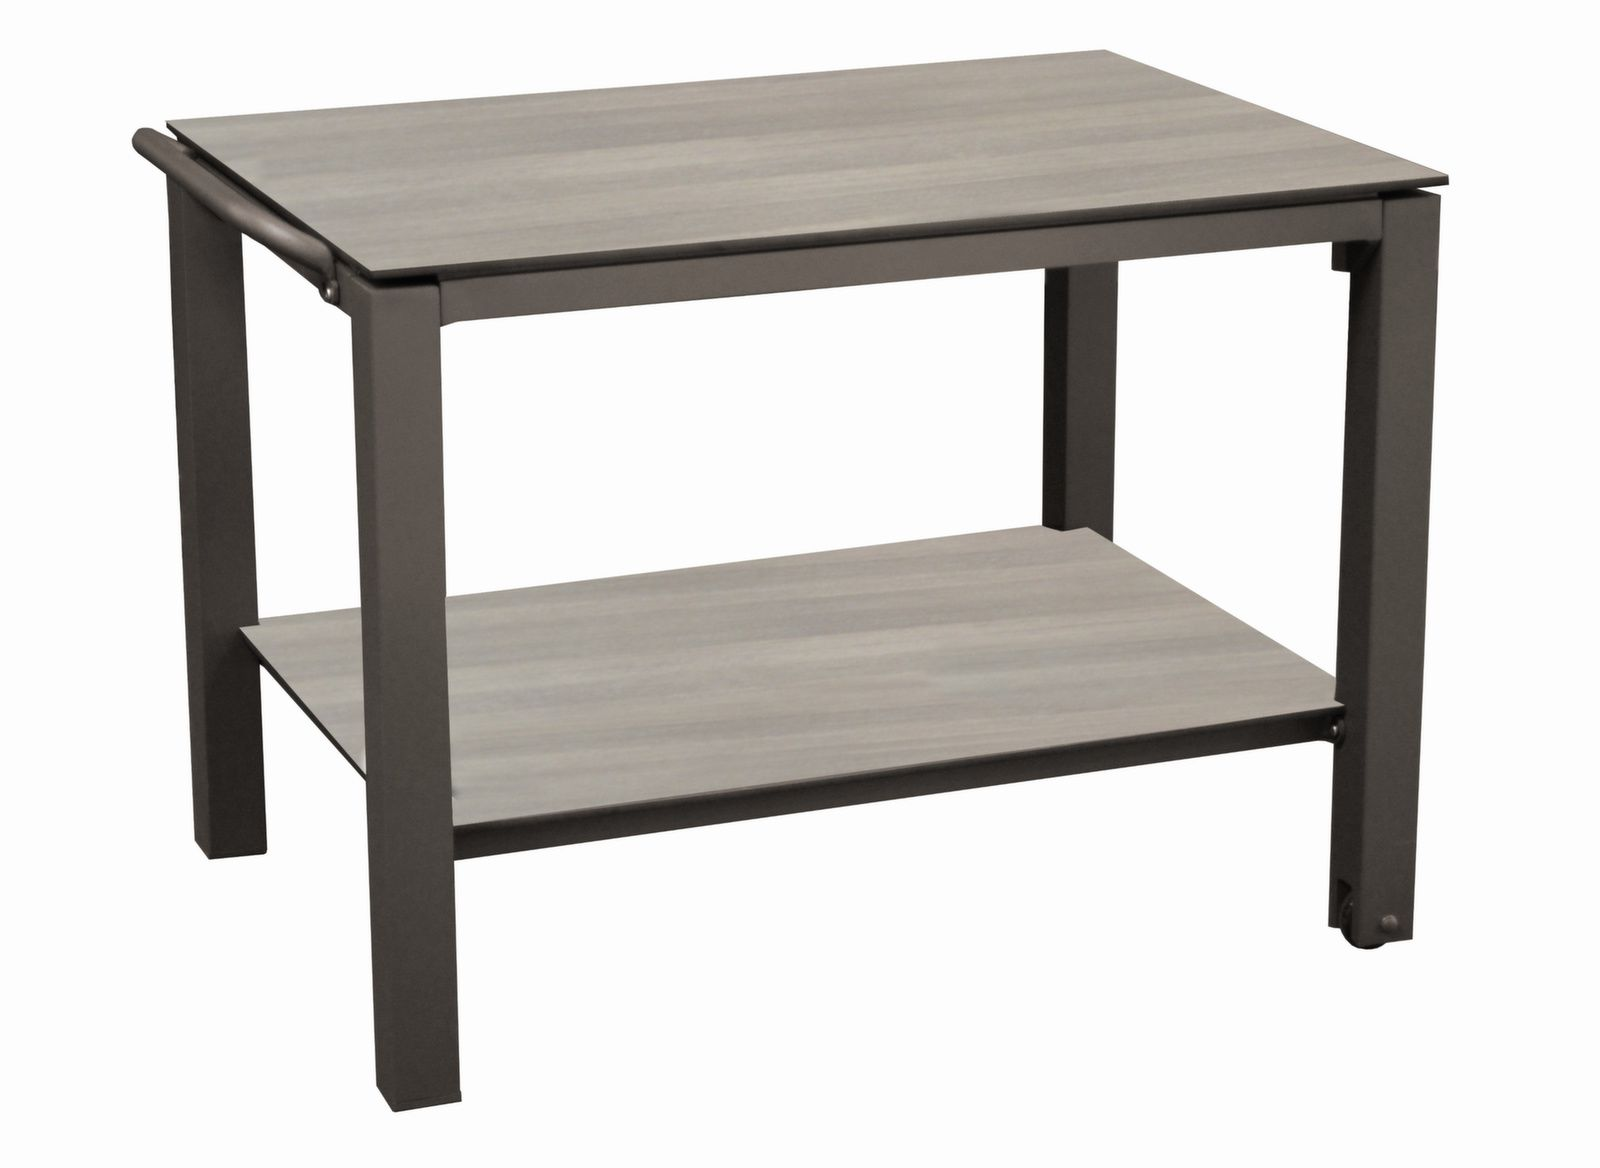 Table Plancha 100 x 70 cm, plateau Trespa®